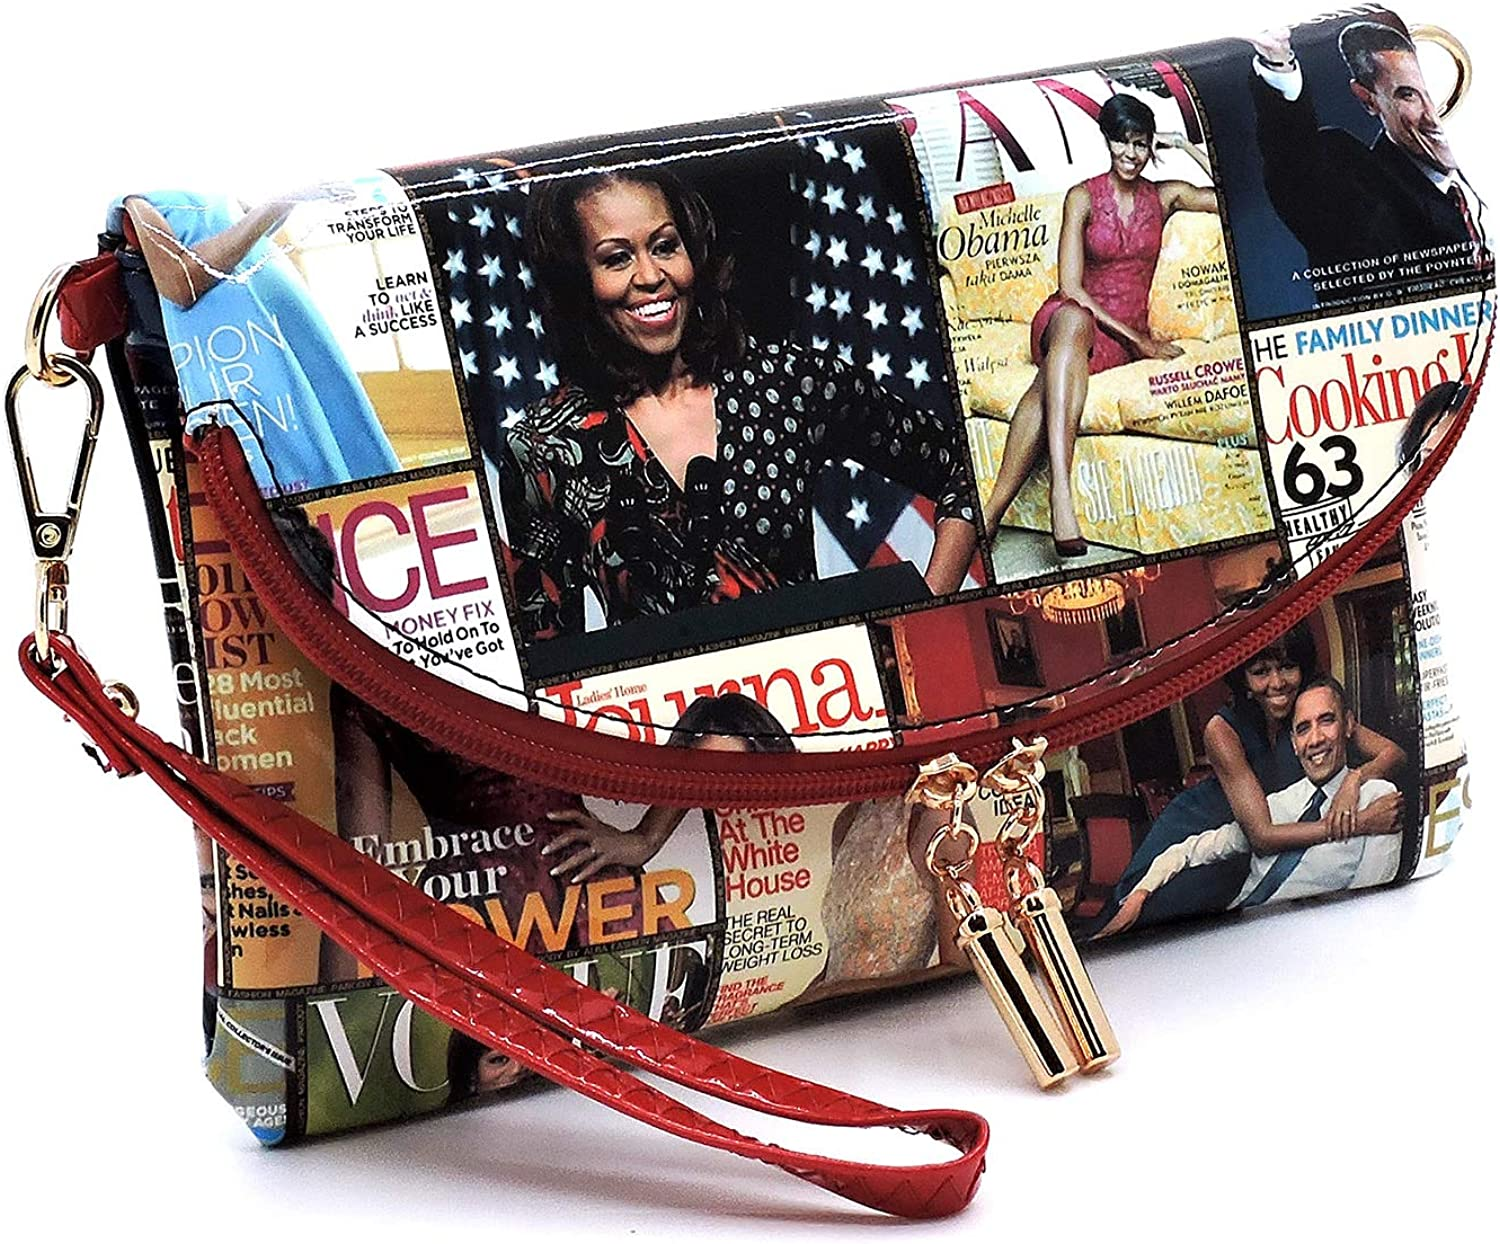 Glossy magazine cover collage clutch bag purses Michelle Obama bags with chain shoulder strap